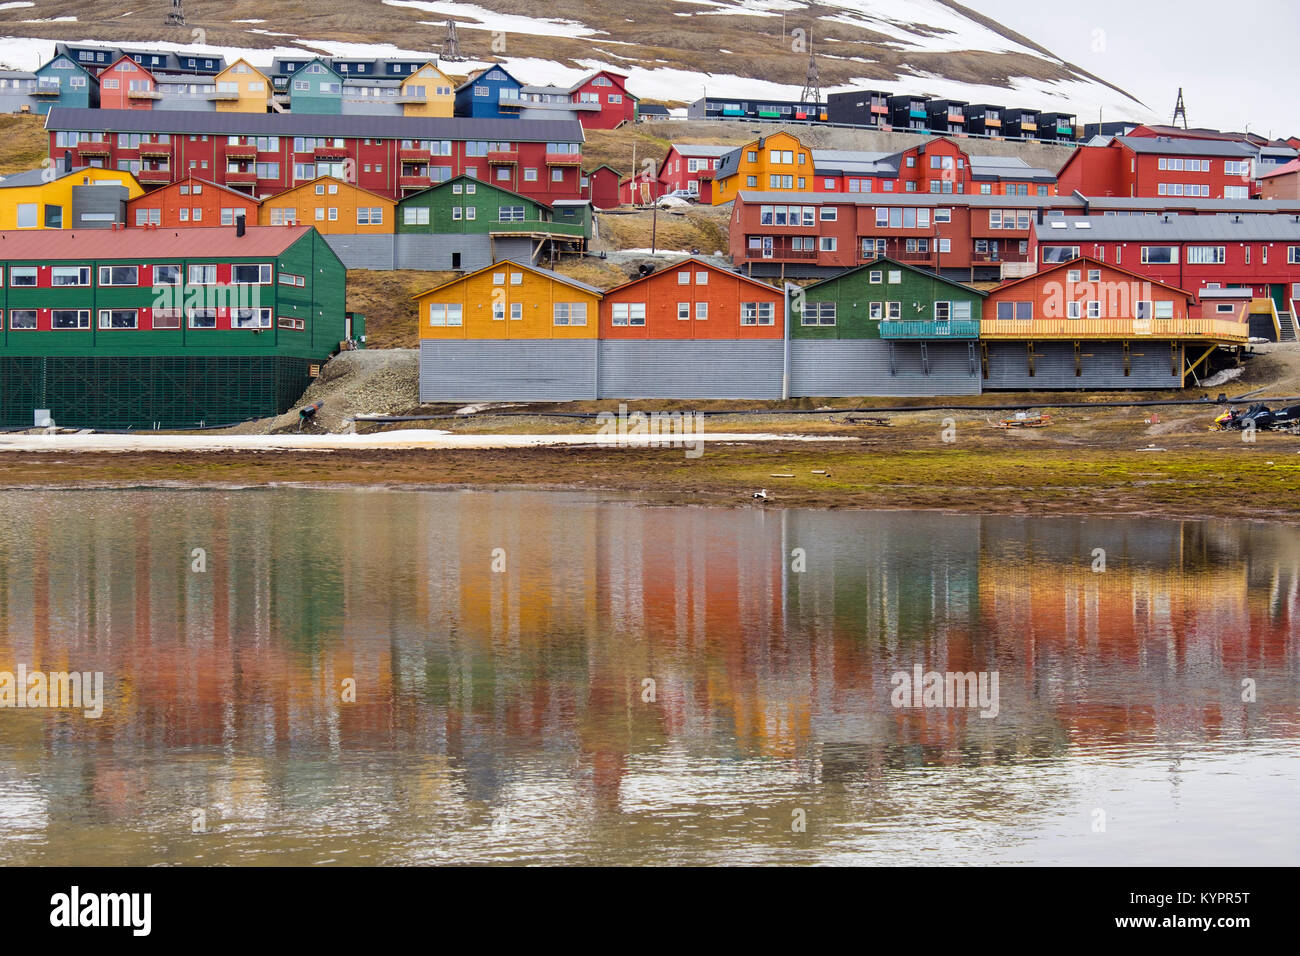 Colourful residential houses reflected in water in coal mining town of Longyearbyen, Spitsbergen Island, Svalbard, - Stock Image